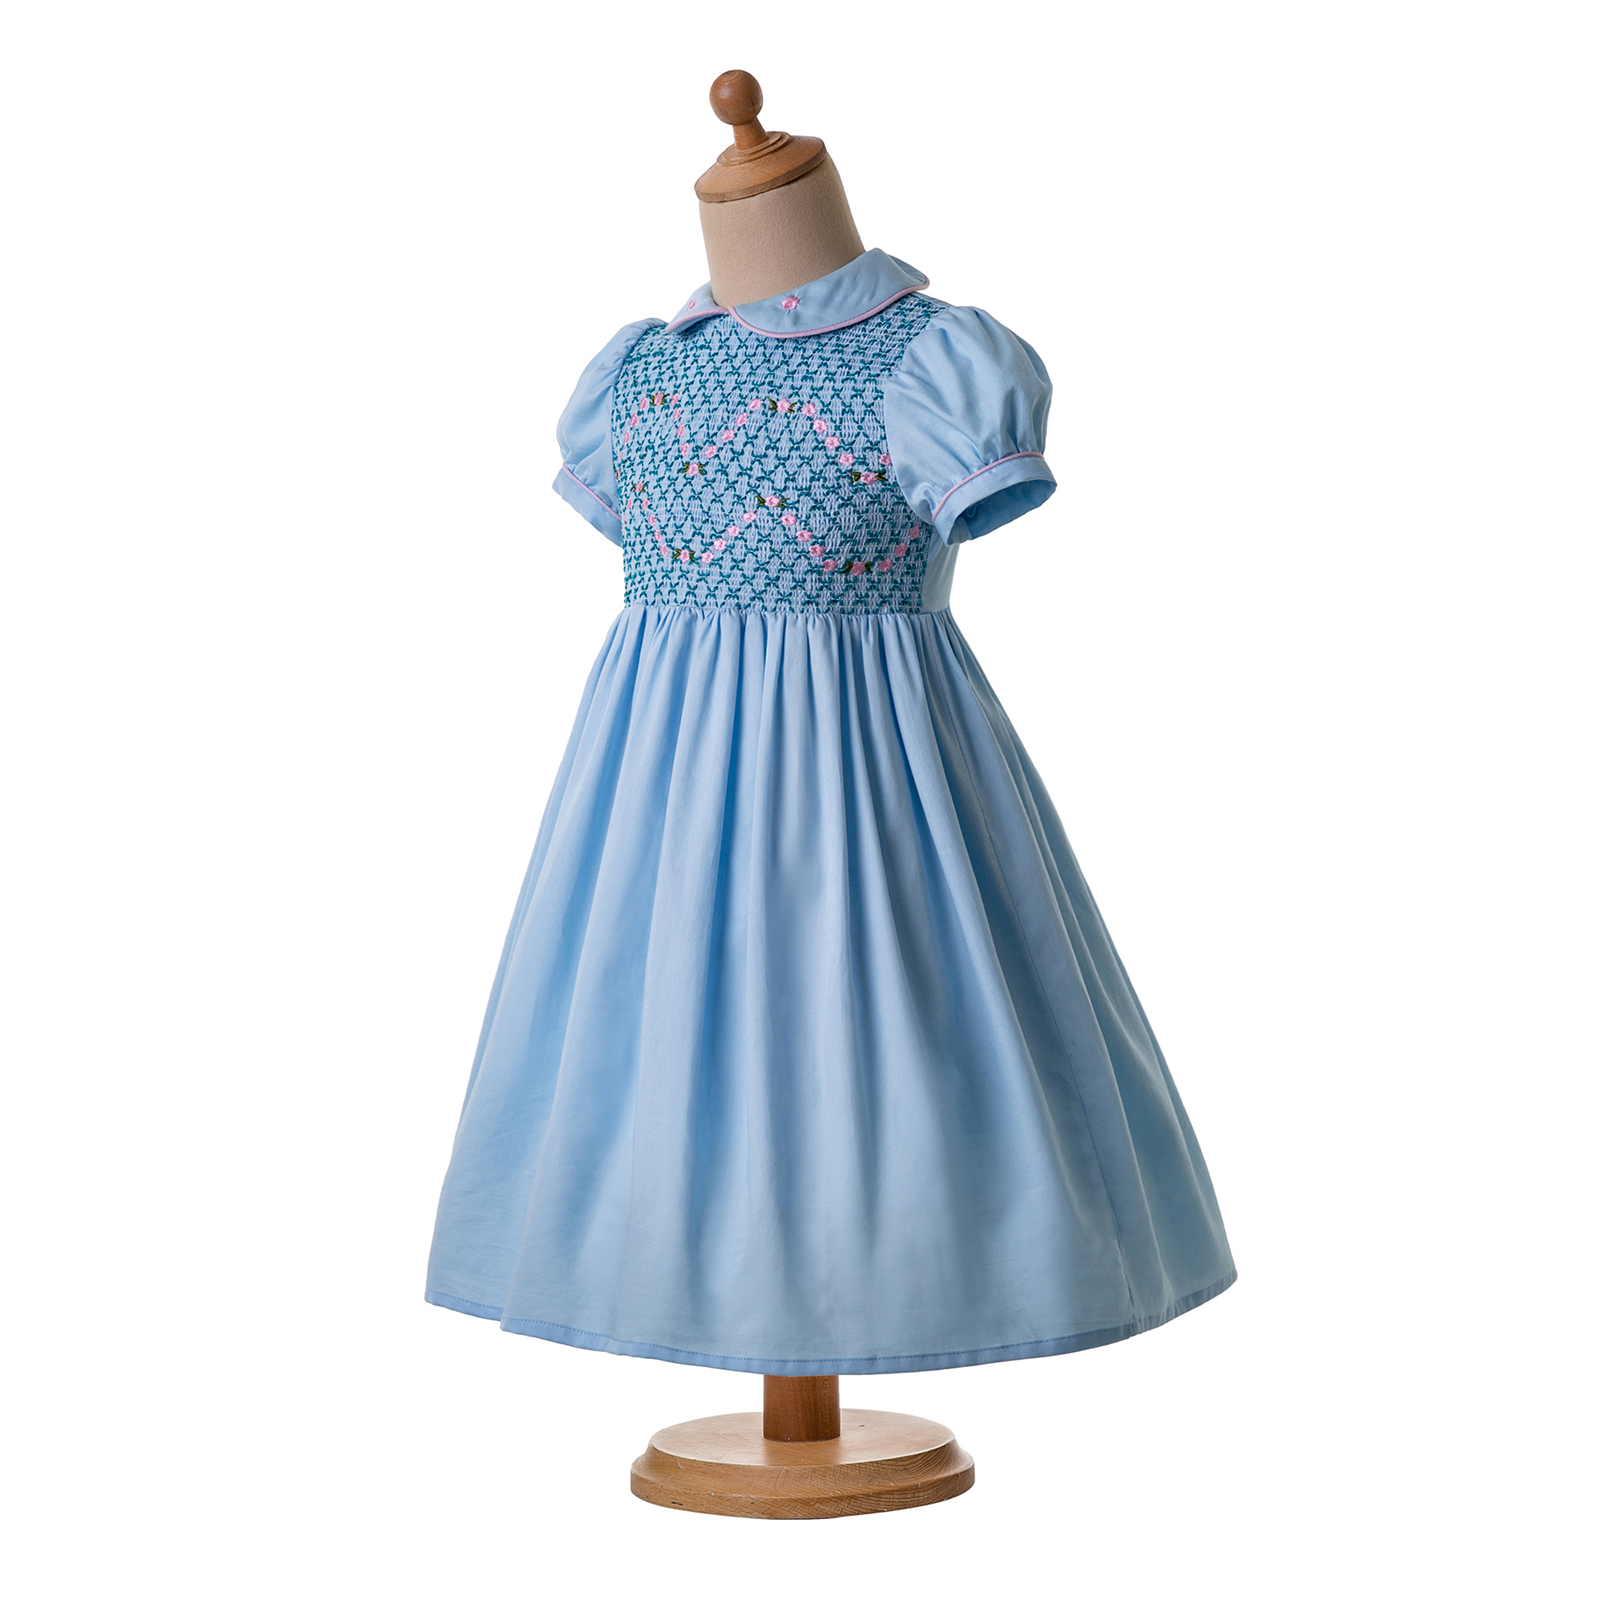 Romany Baby Girls Smocked Dress Peter Pan Collar Christmas Party Outfits 2-12yrs